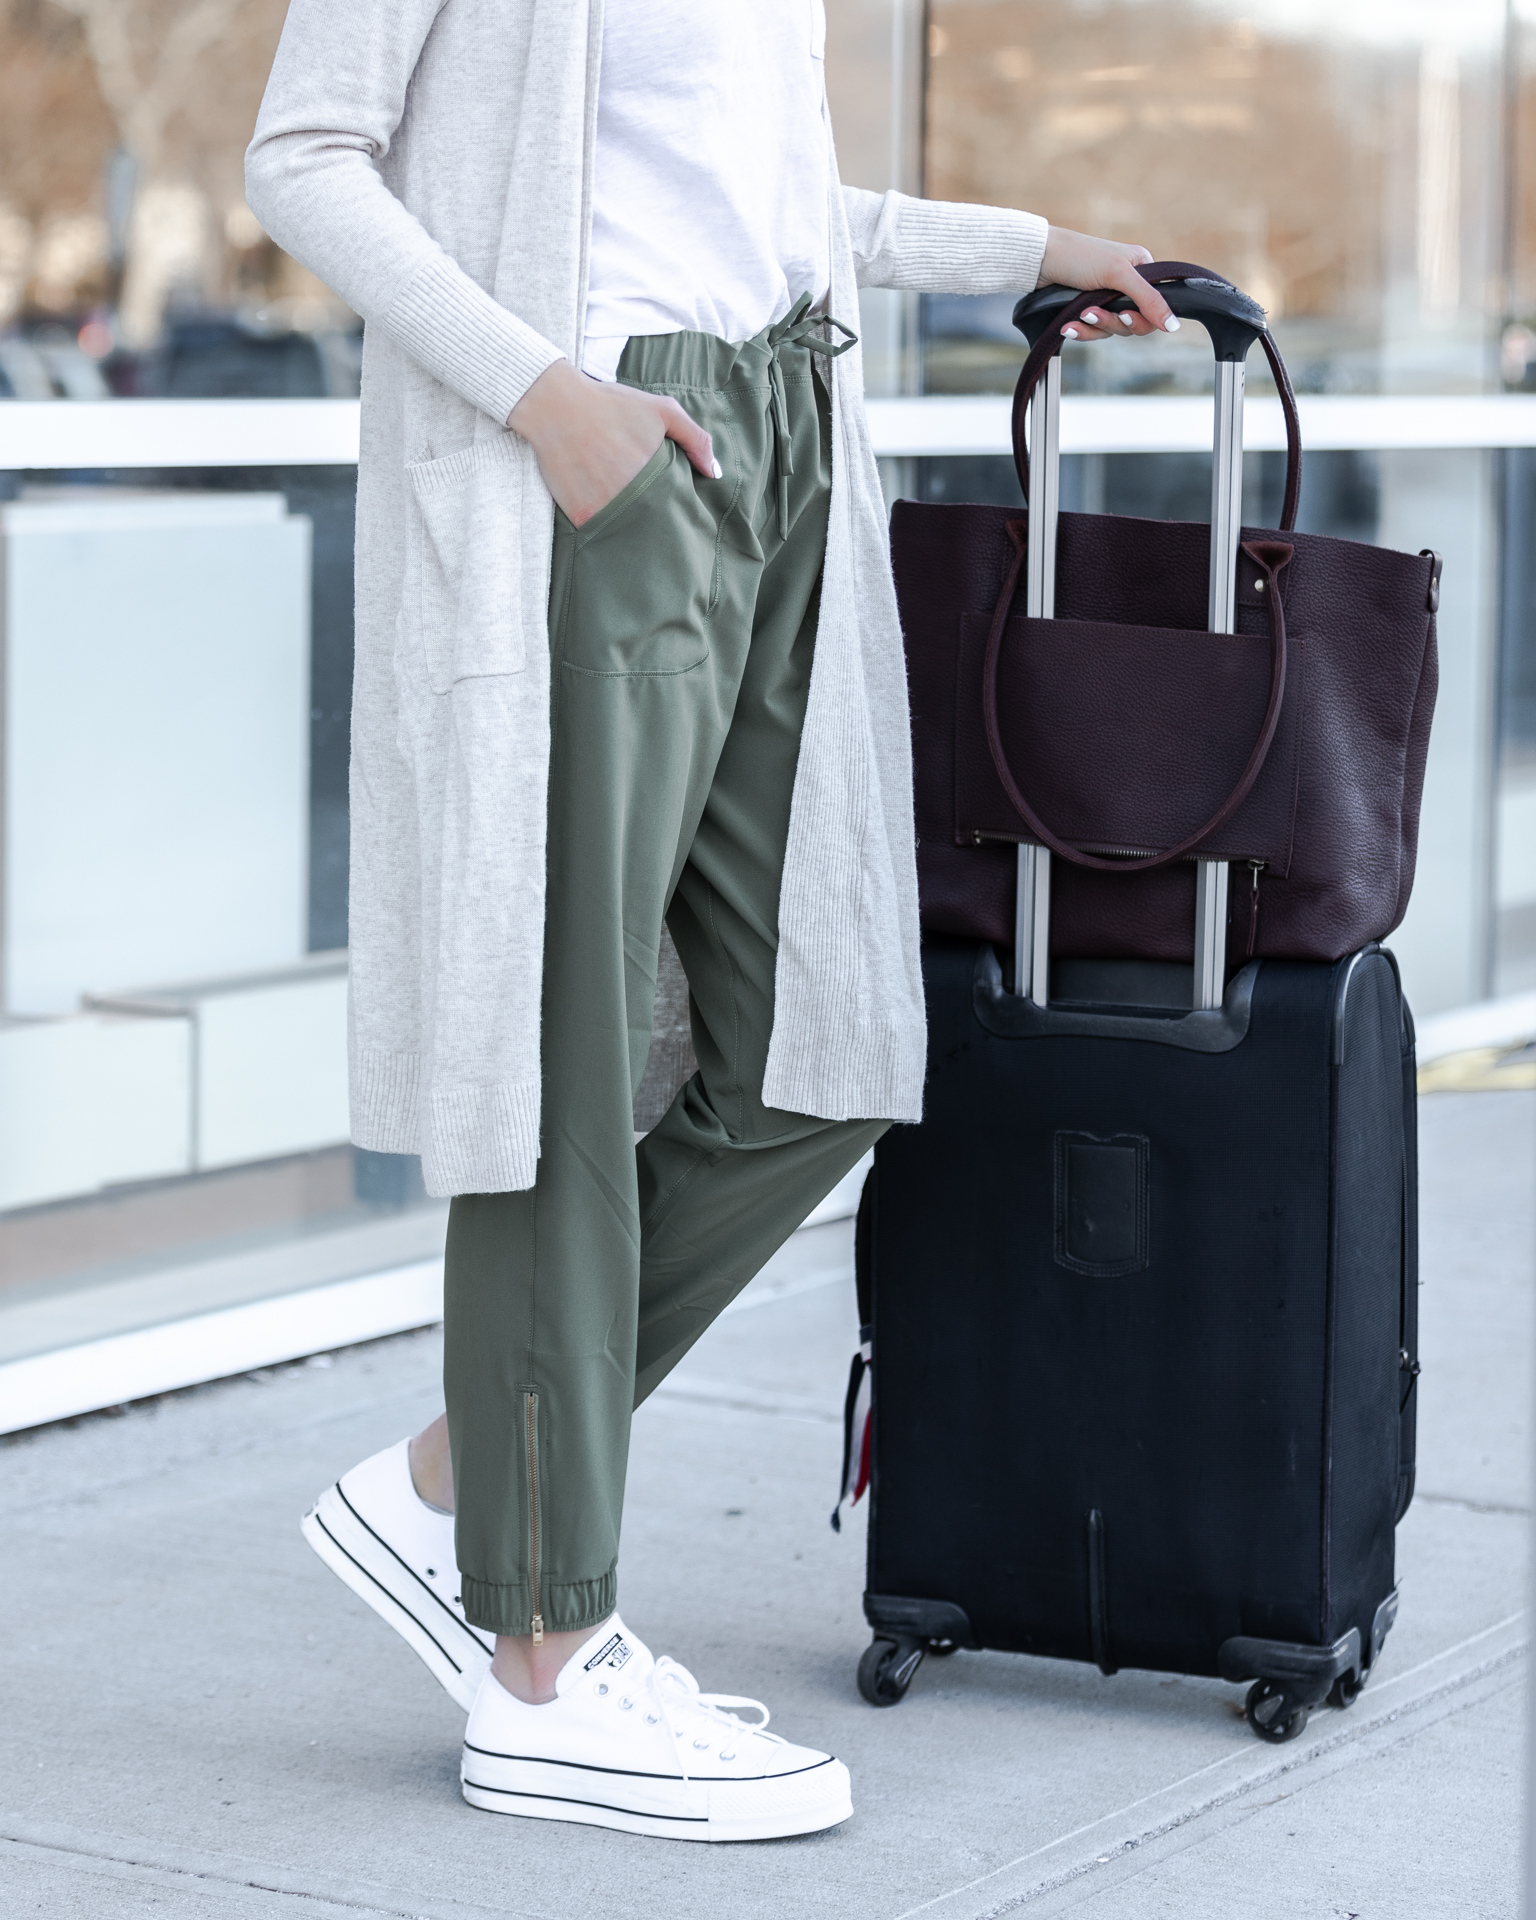 albion-fit-sage-jetsetters-comfortable-athleisure-outfit-the-glamorous-gal